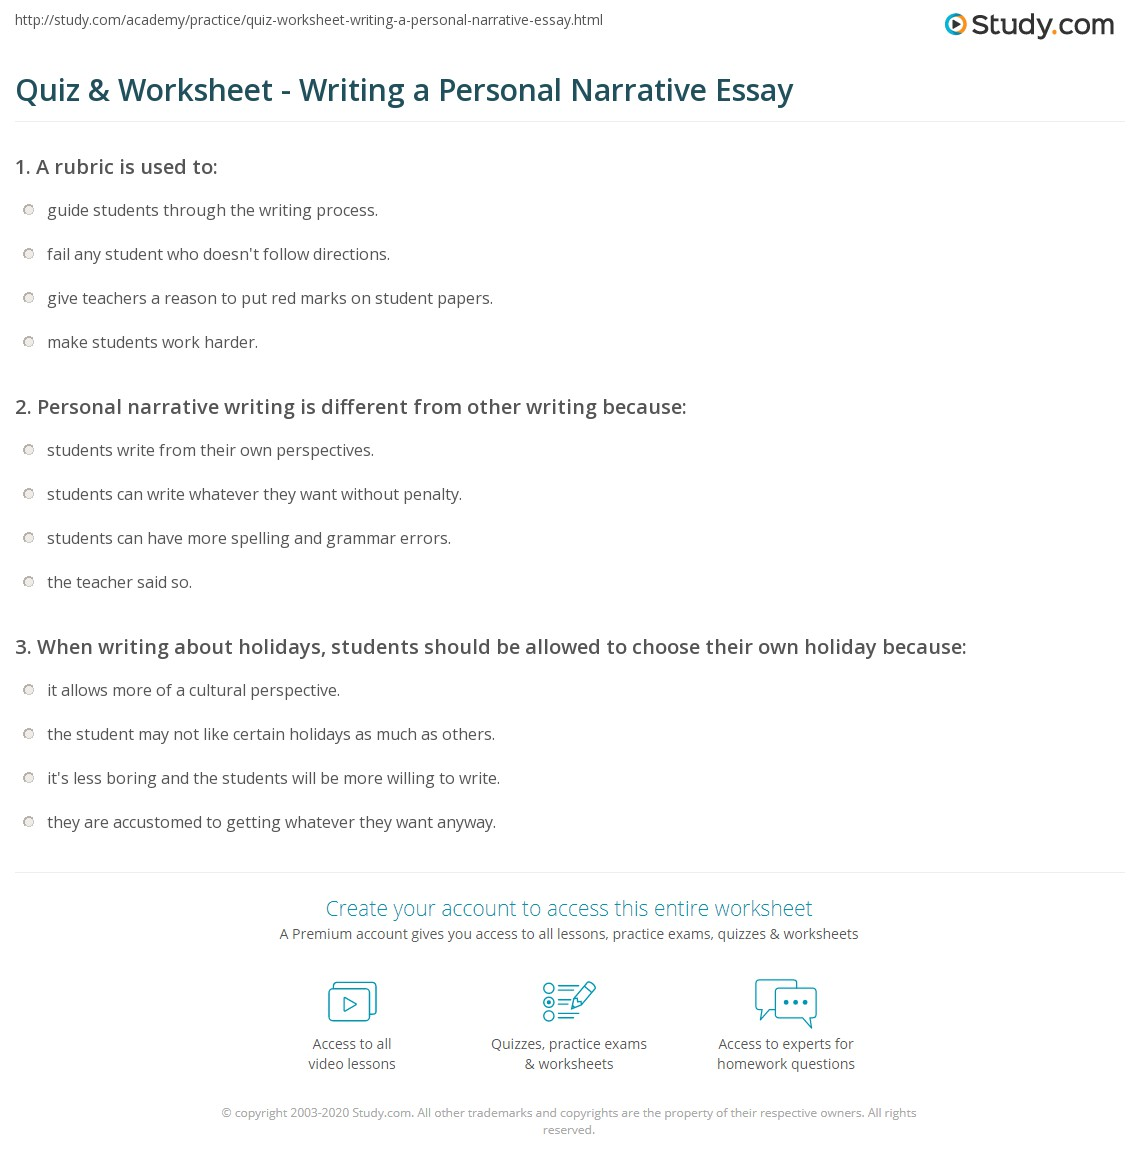 quiz worksheet writing a personal narrative essay com print how to write a personal narrative essay example topics worksheet